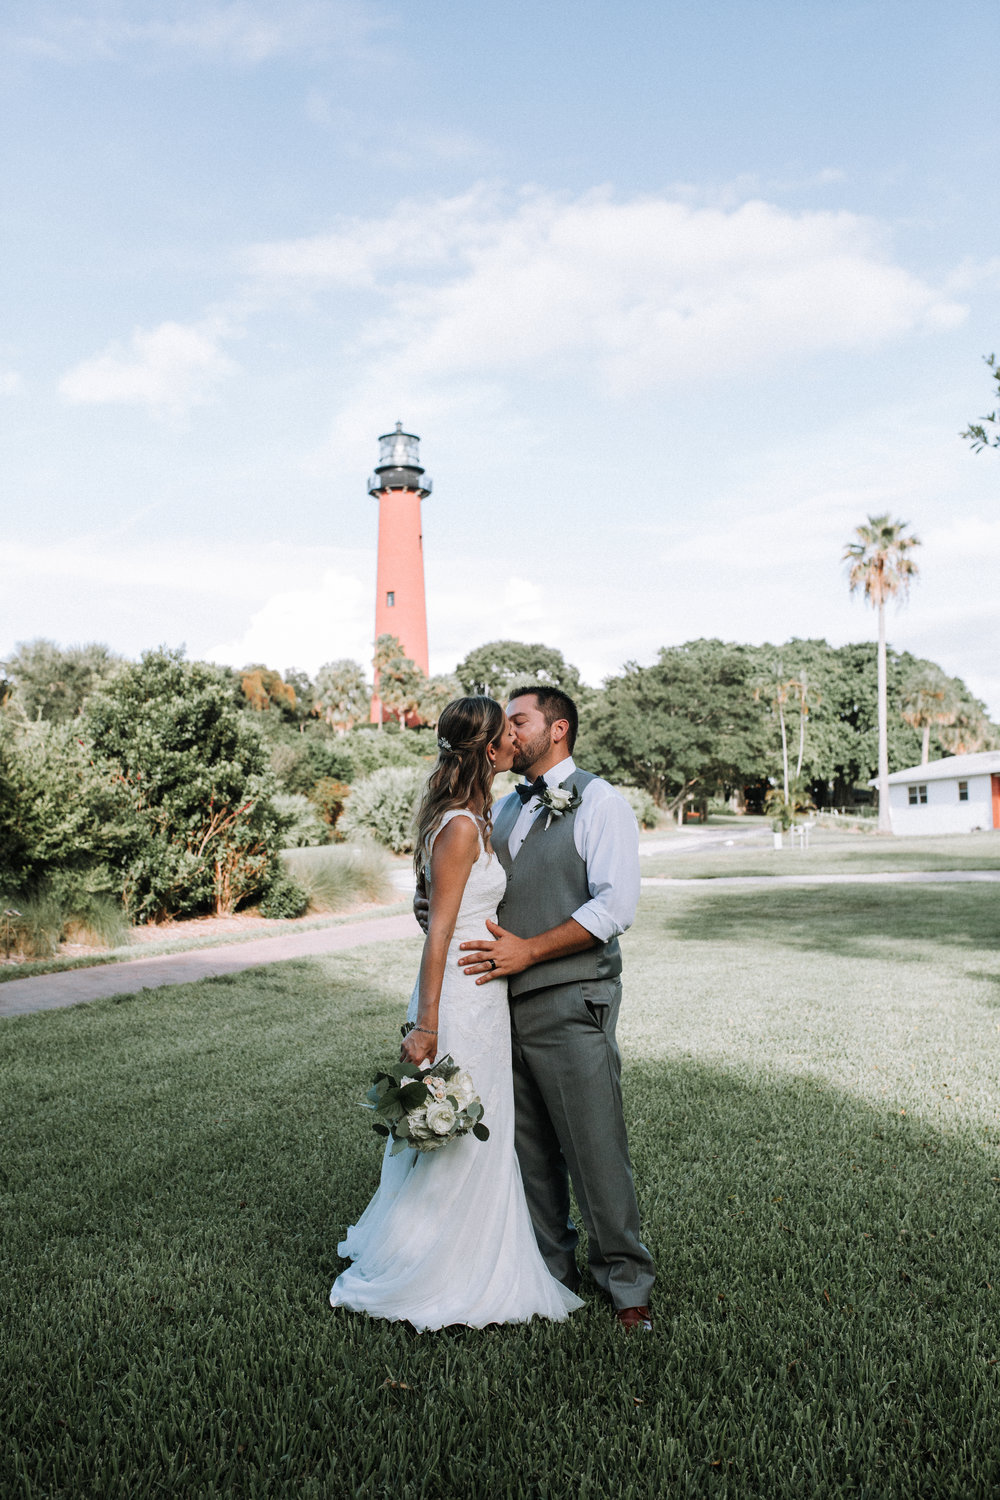 Jupiter_Lighthouse_Wedding_Rkm_Photography_980.jpg